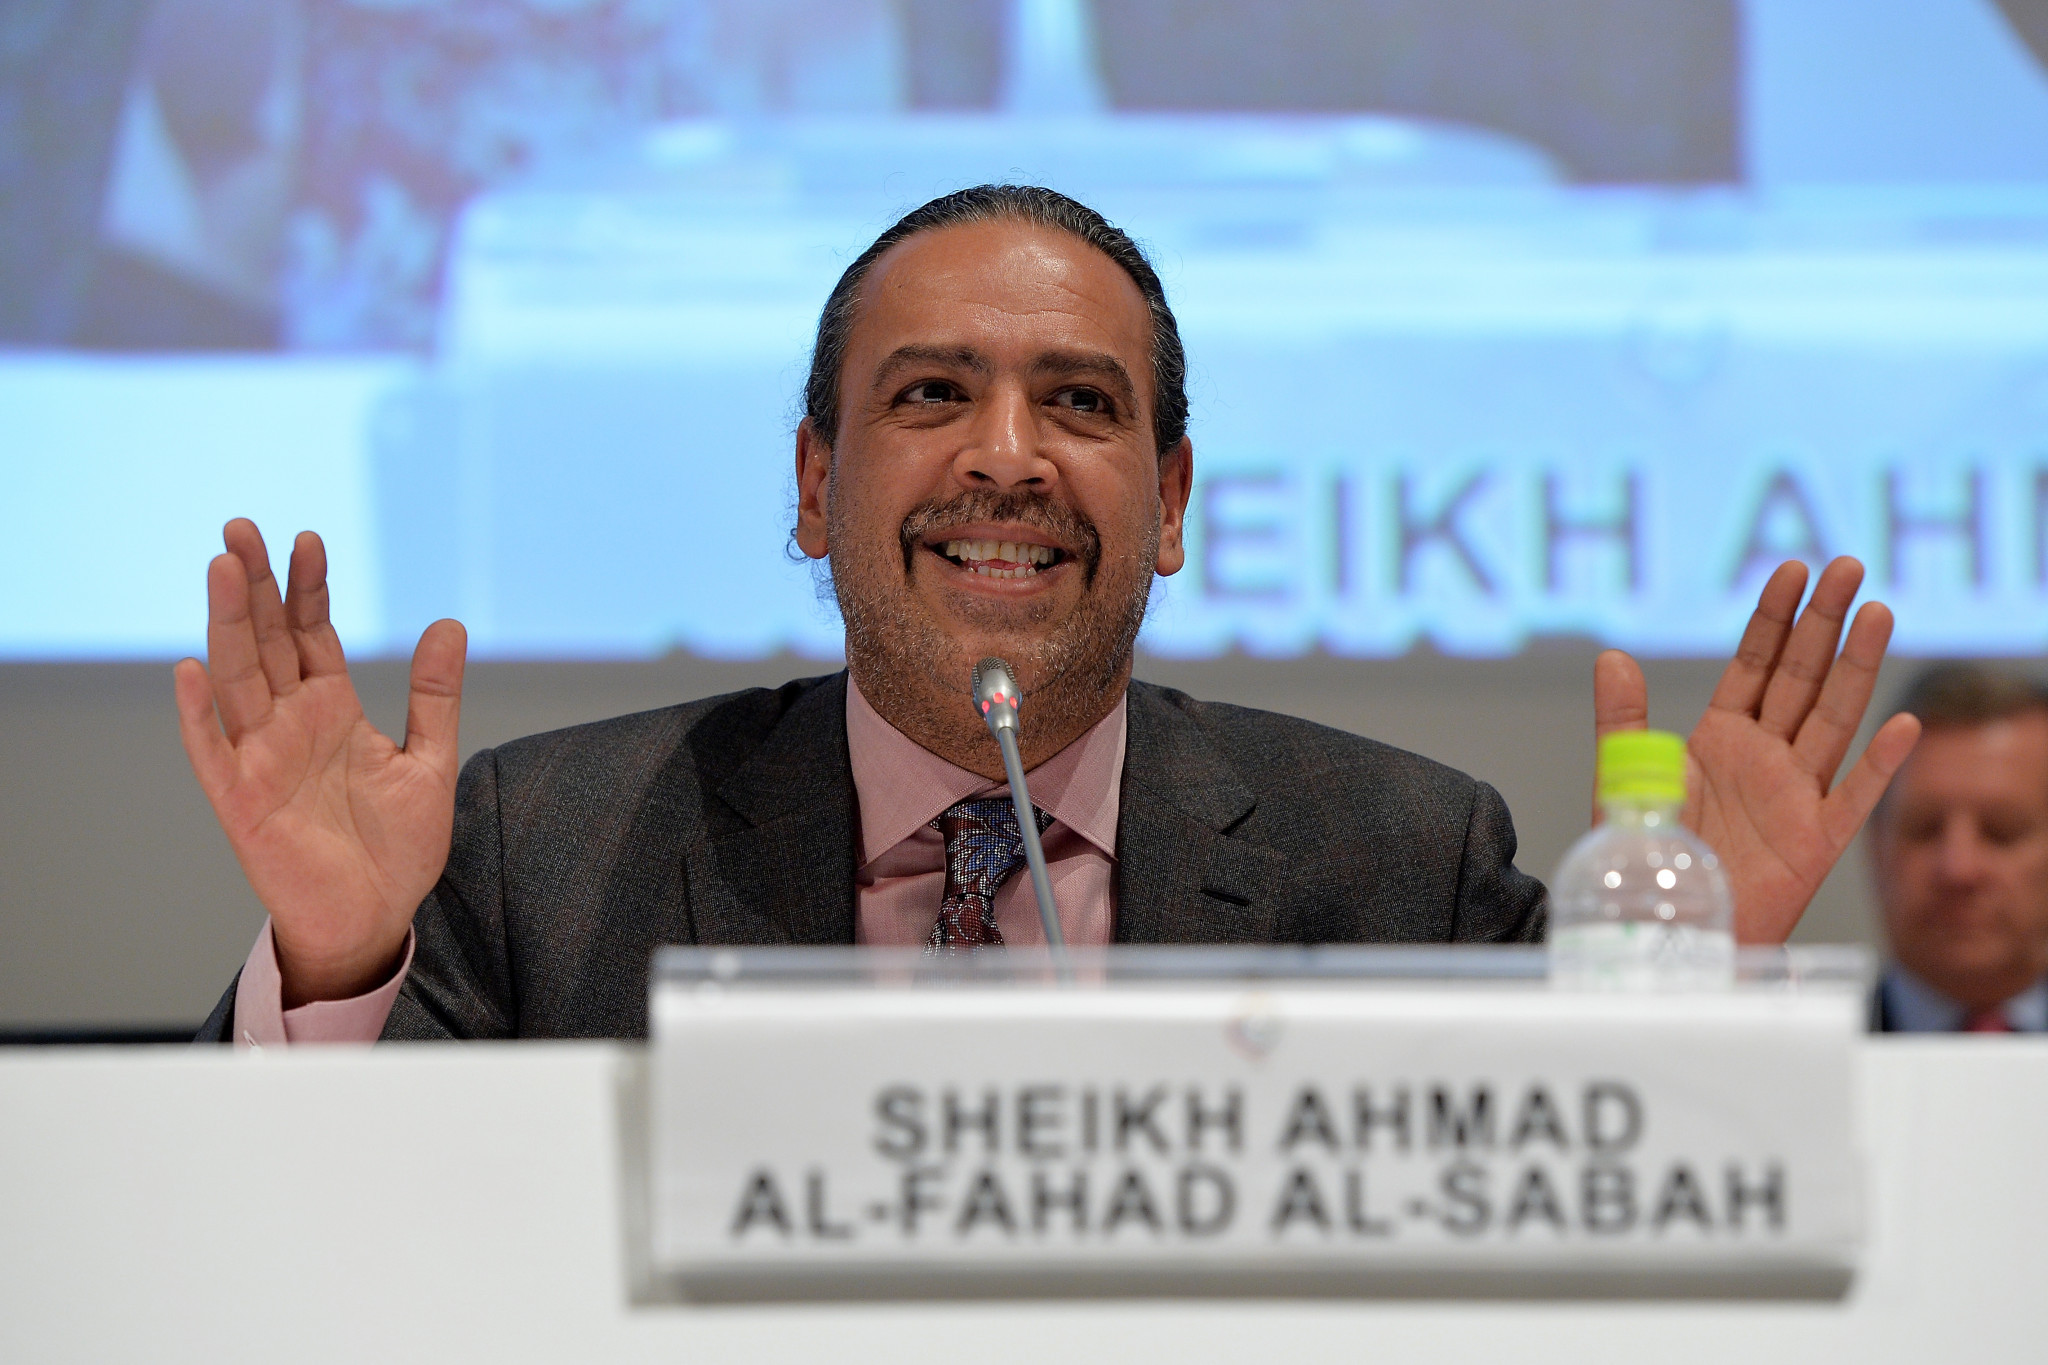 The ANOC General Assembly's focus was on Sheikh Ahmad, but several interesting topics emerged ©Getty Images